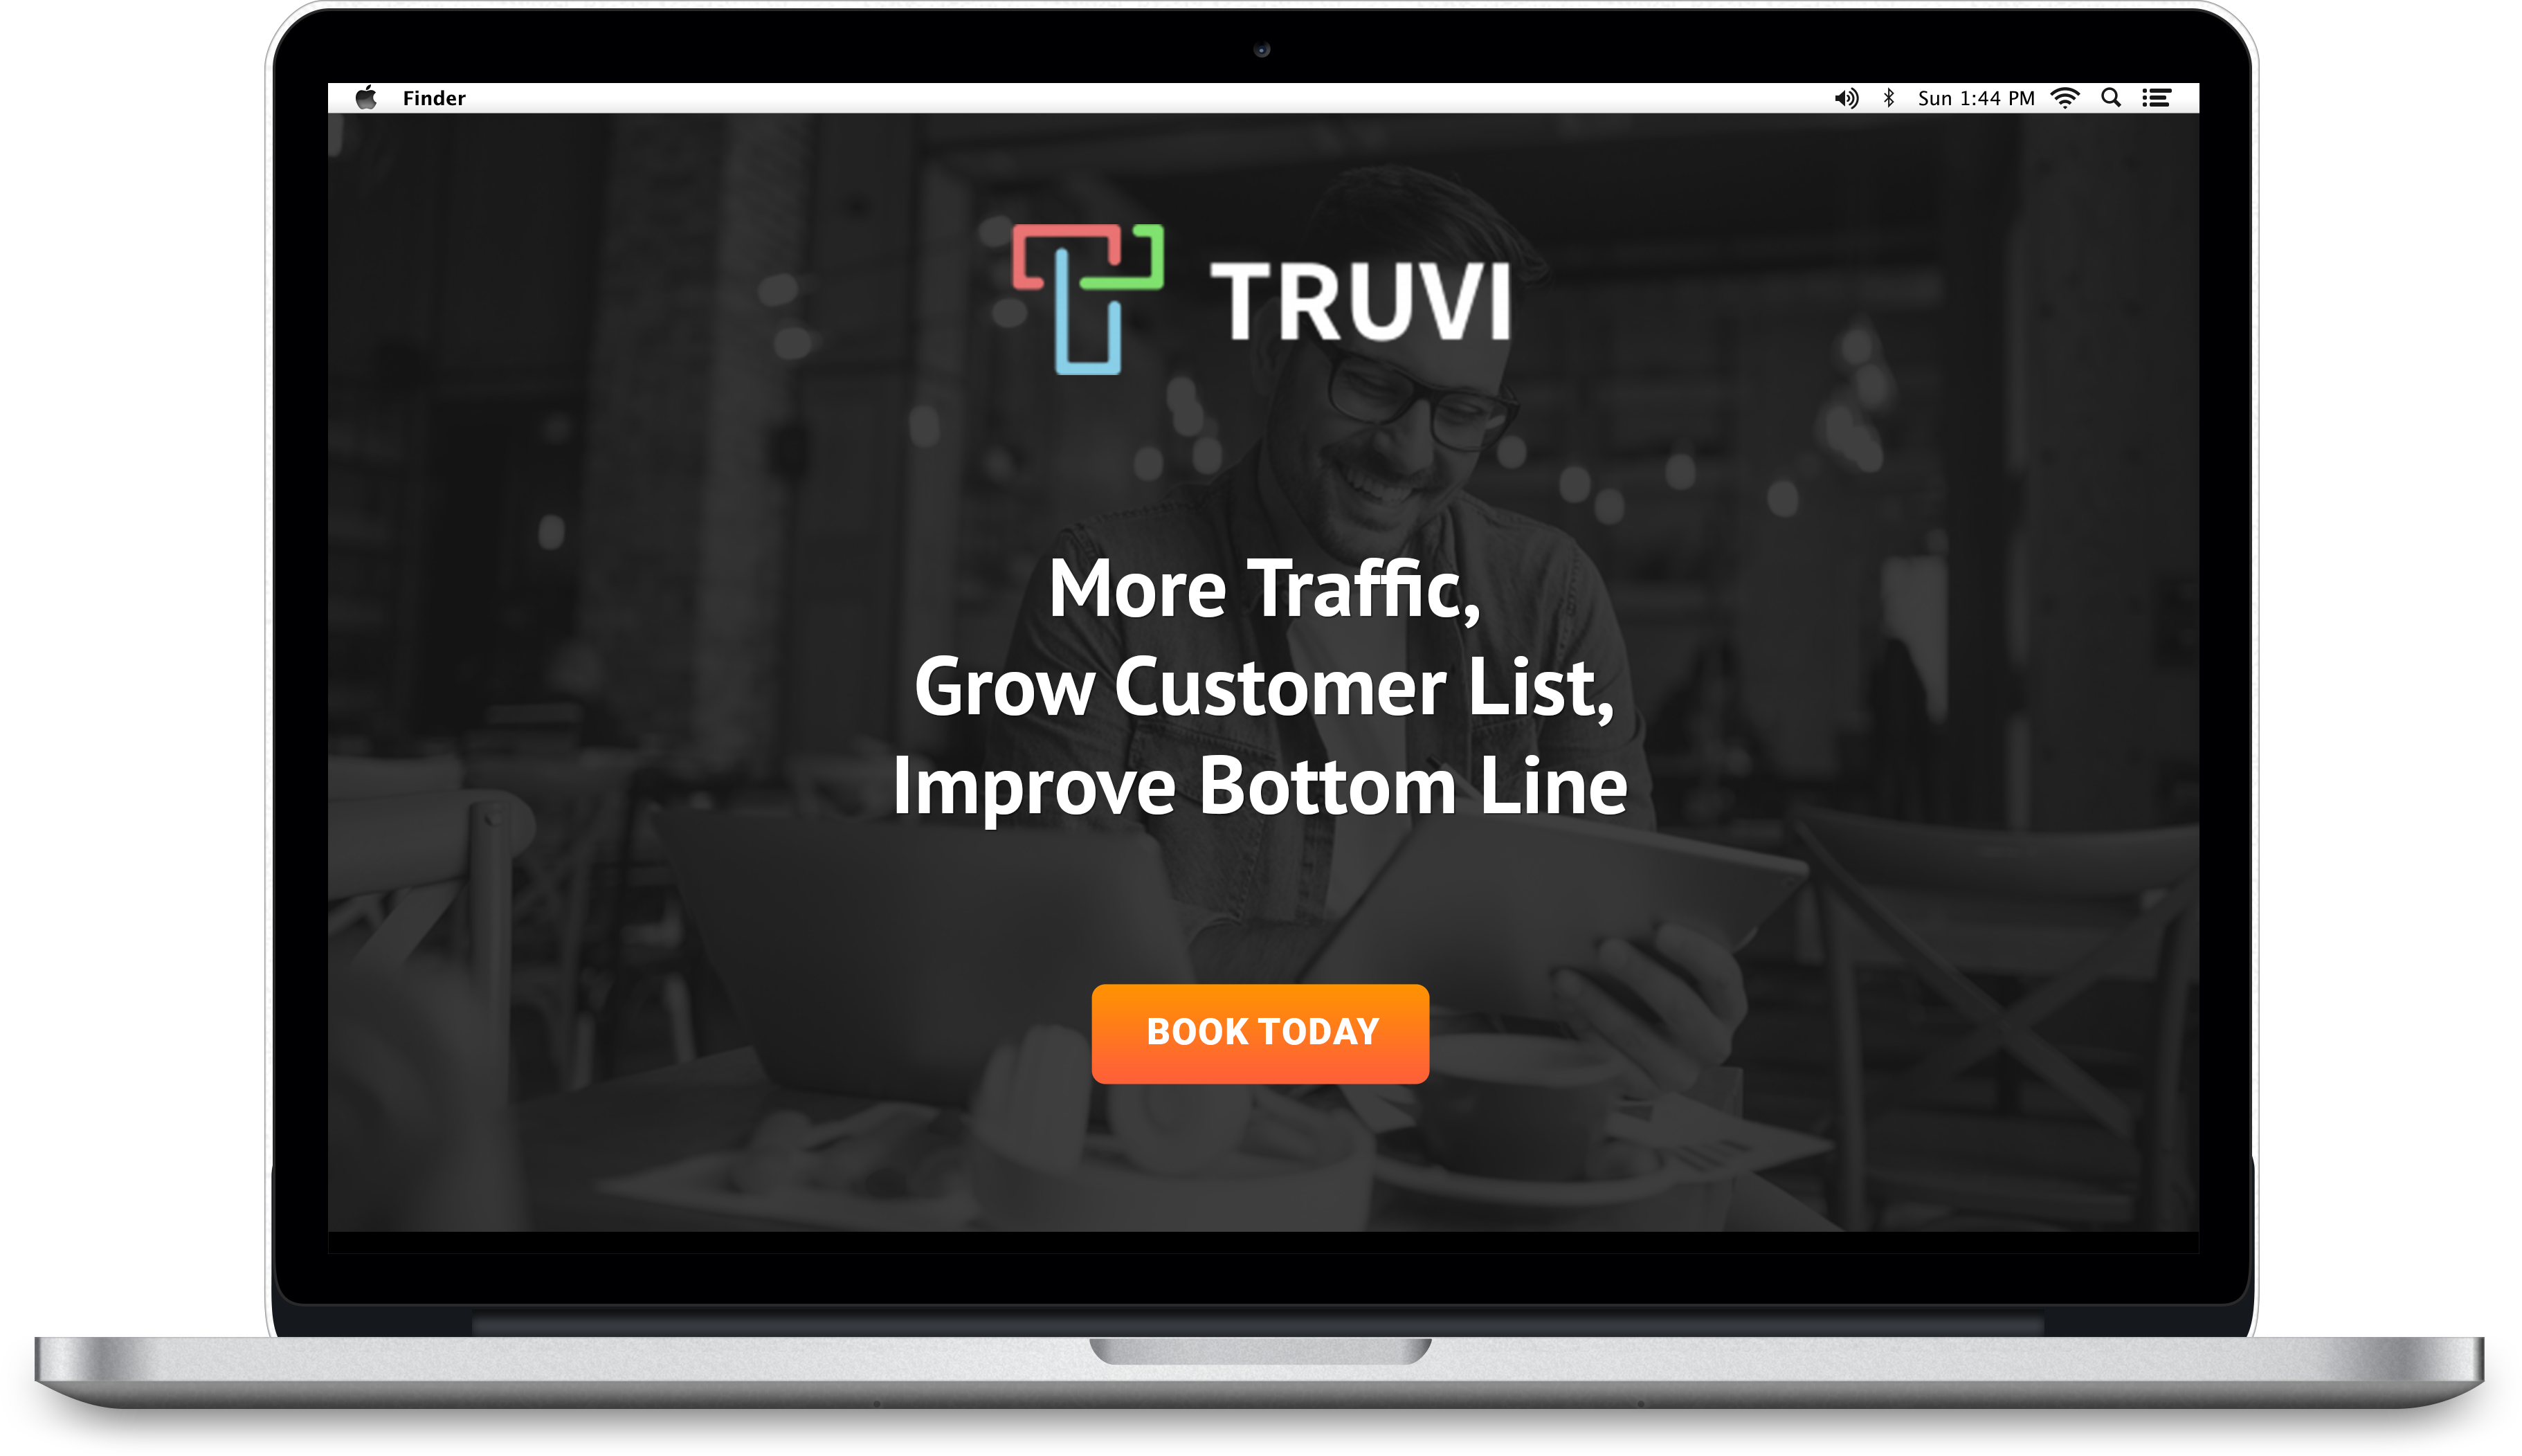 Grow your sales and customer list and connect your customers directly to keep them coming back using text & email marketing AND sponsored ads on facebook ads, instagram ads, and google local search.